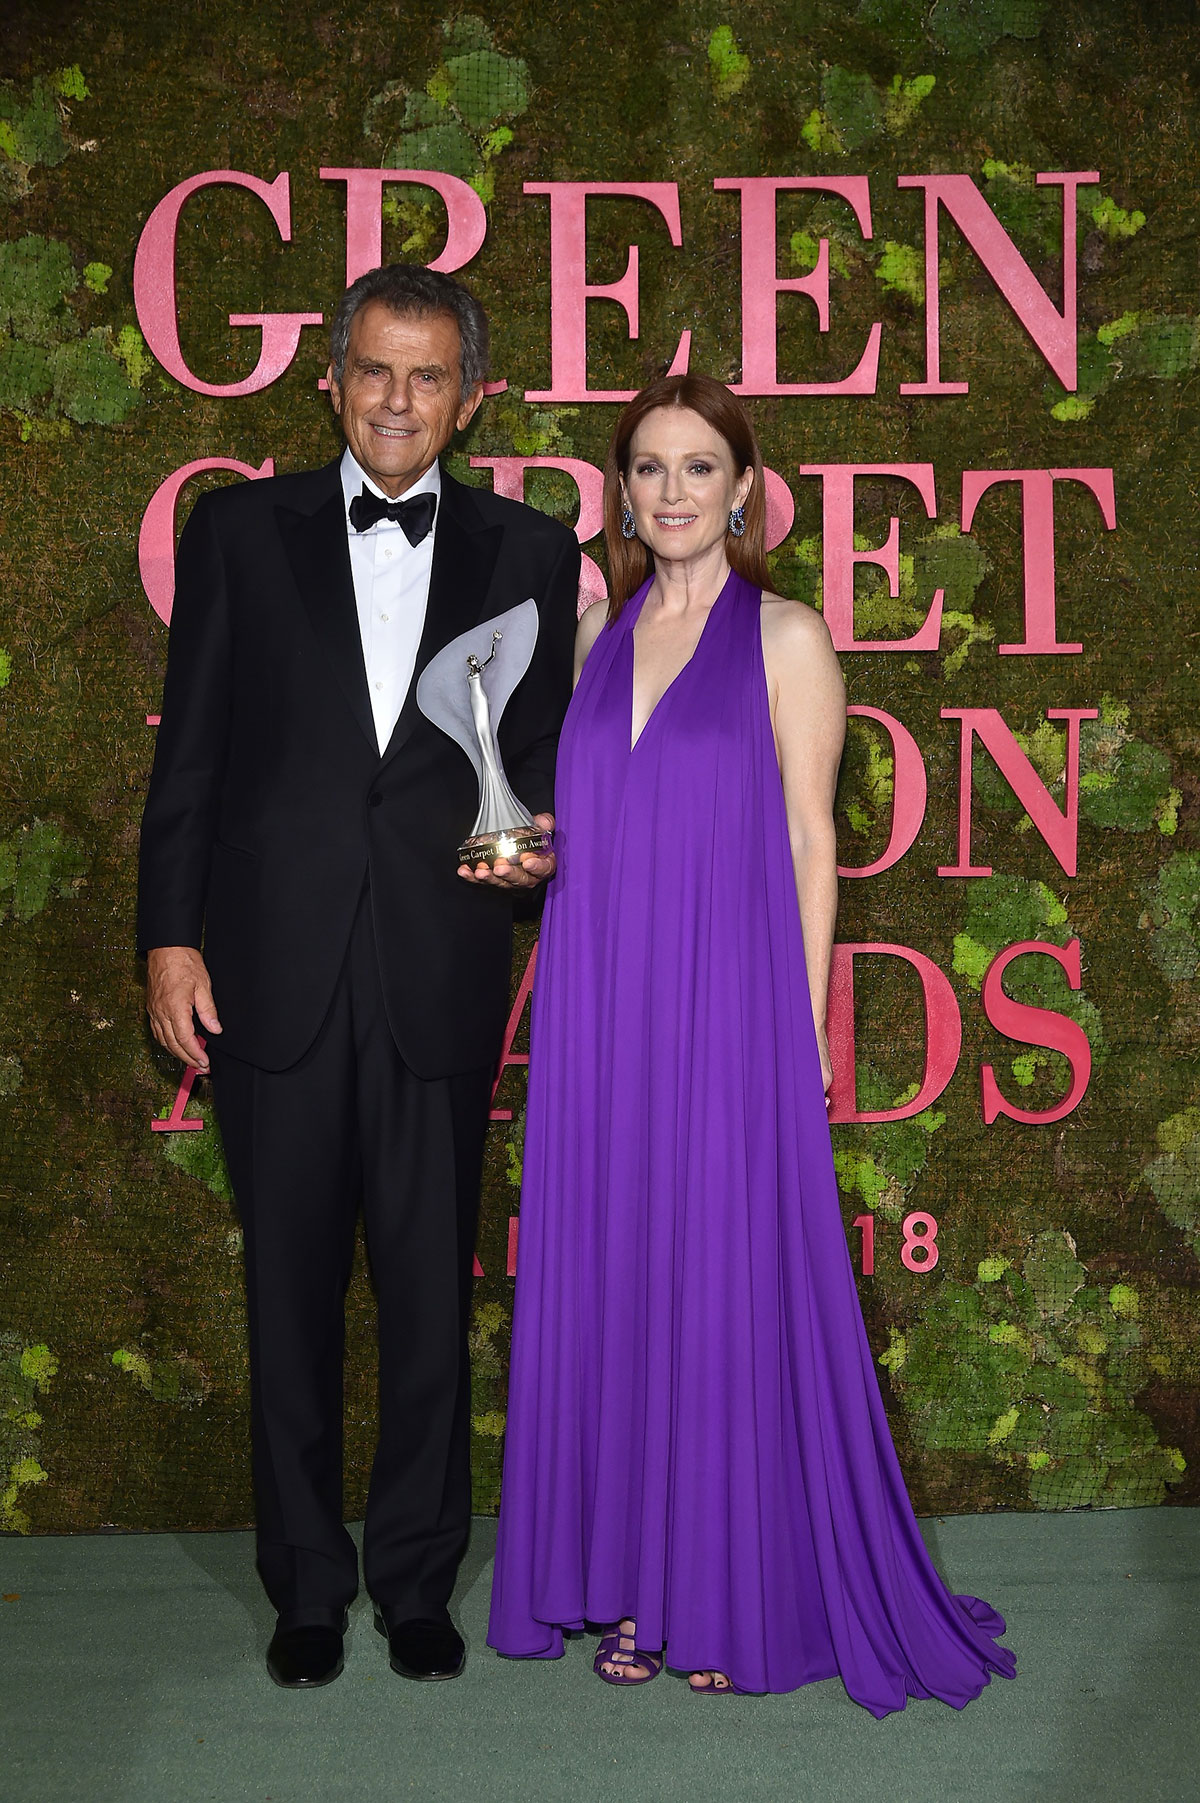 Green Carpet Fashion Awards Italia - Milano 2018